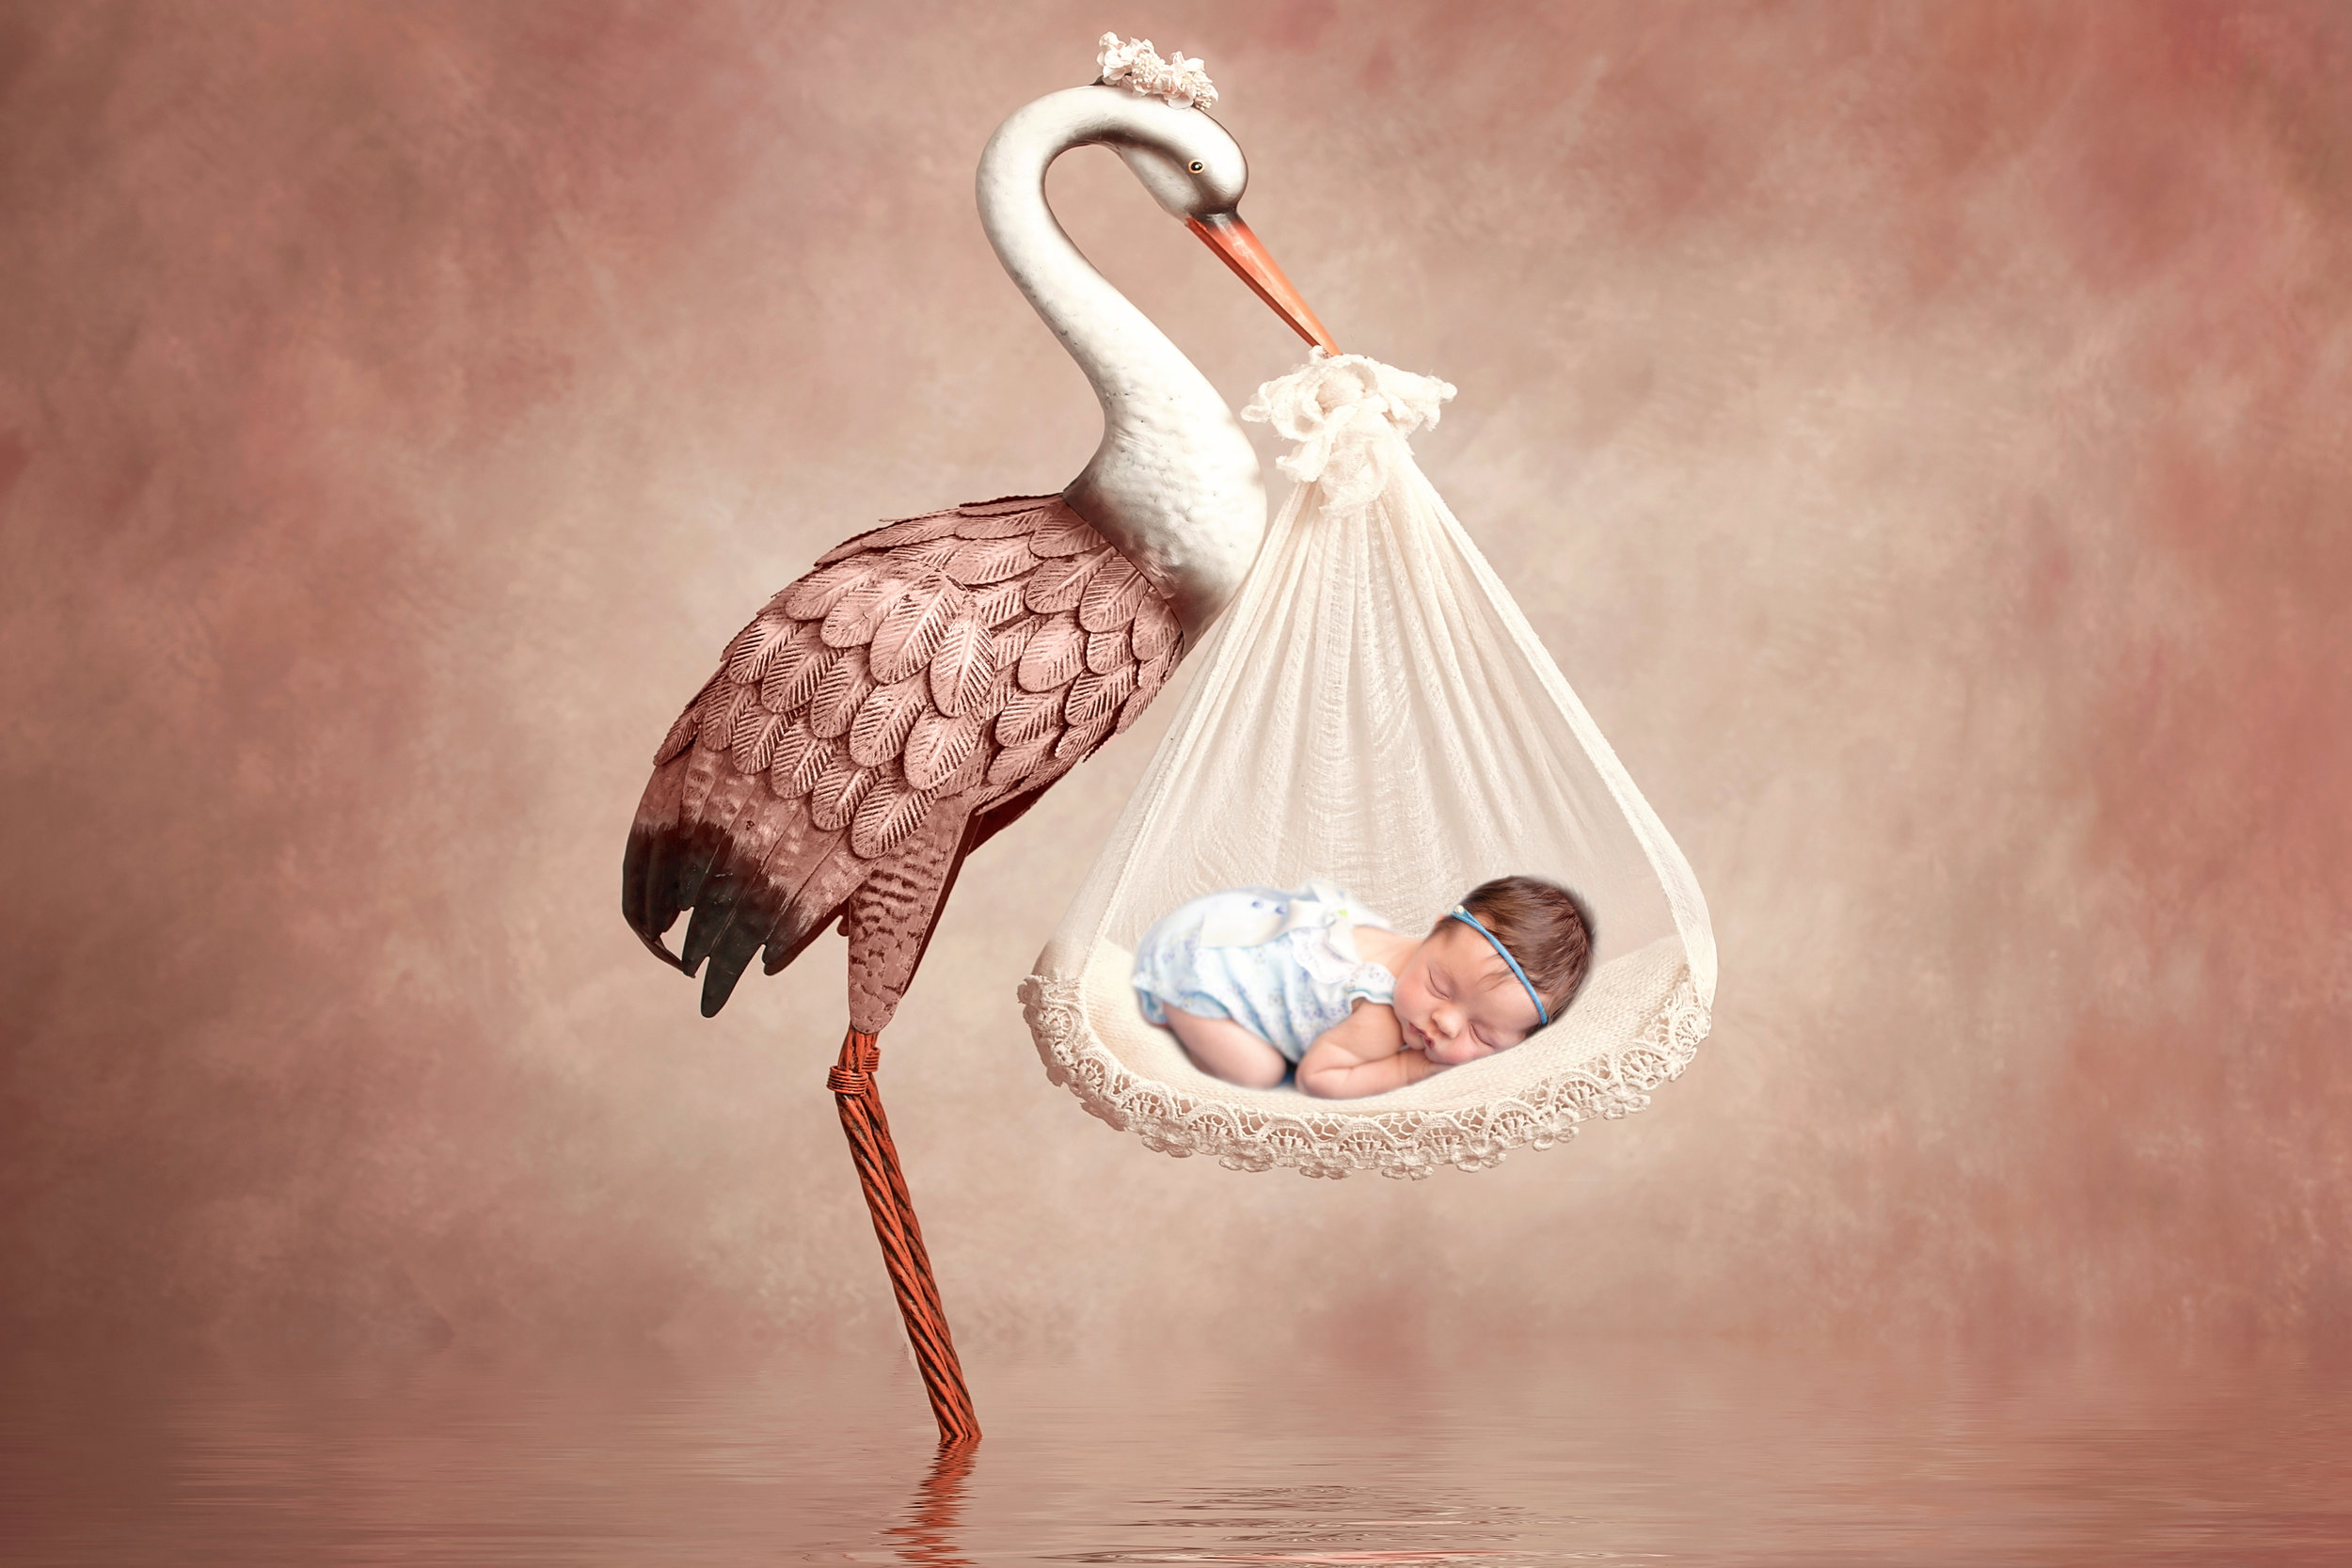 Newborn baby girl photoshoot idea. Calgary and Airdrie Newborn Photographer - Milashka Photography. Composite image with a stork.